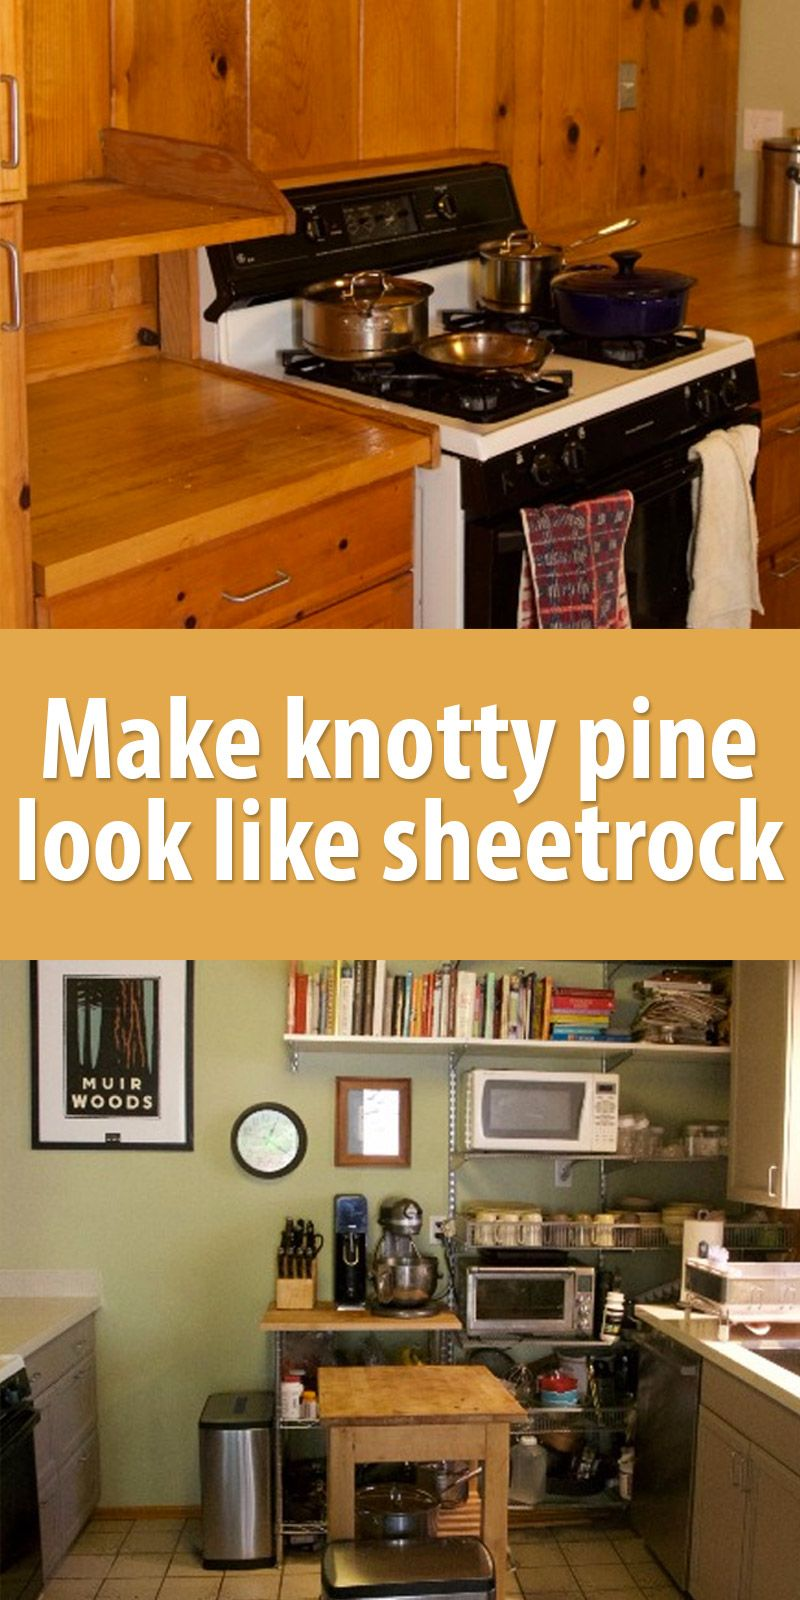 How To Make Knotty Pine Look Like Sheetrock Knotty Pine Knotty Pine Kitchen Knotty Pine Cabinets